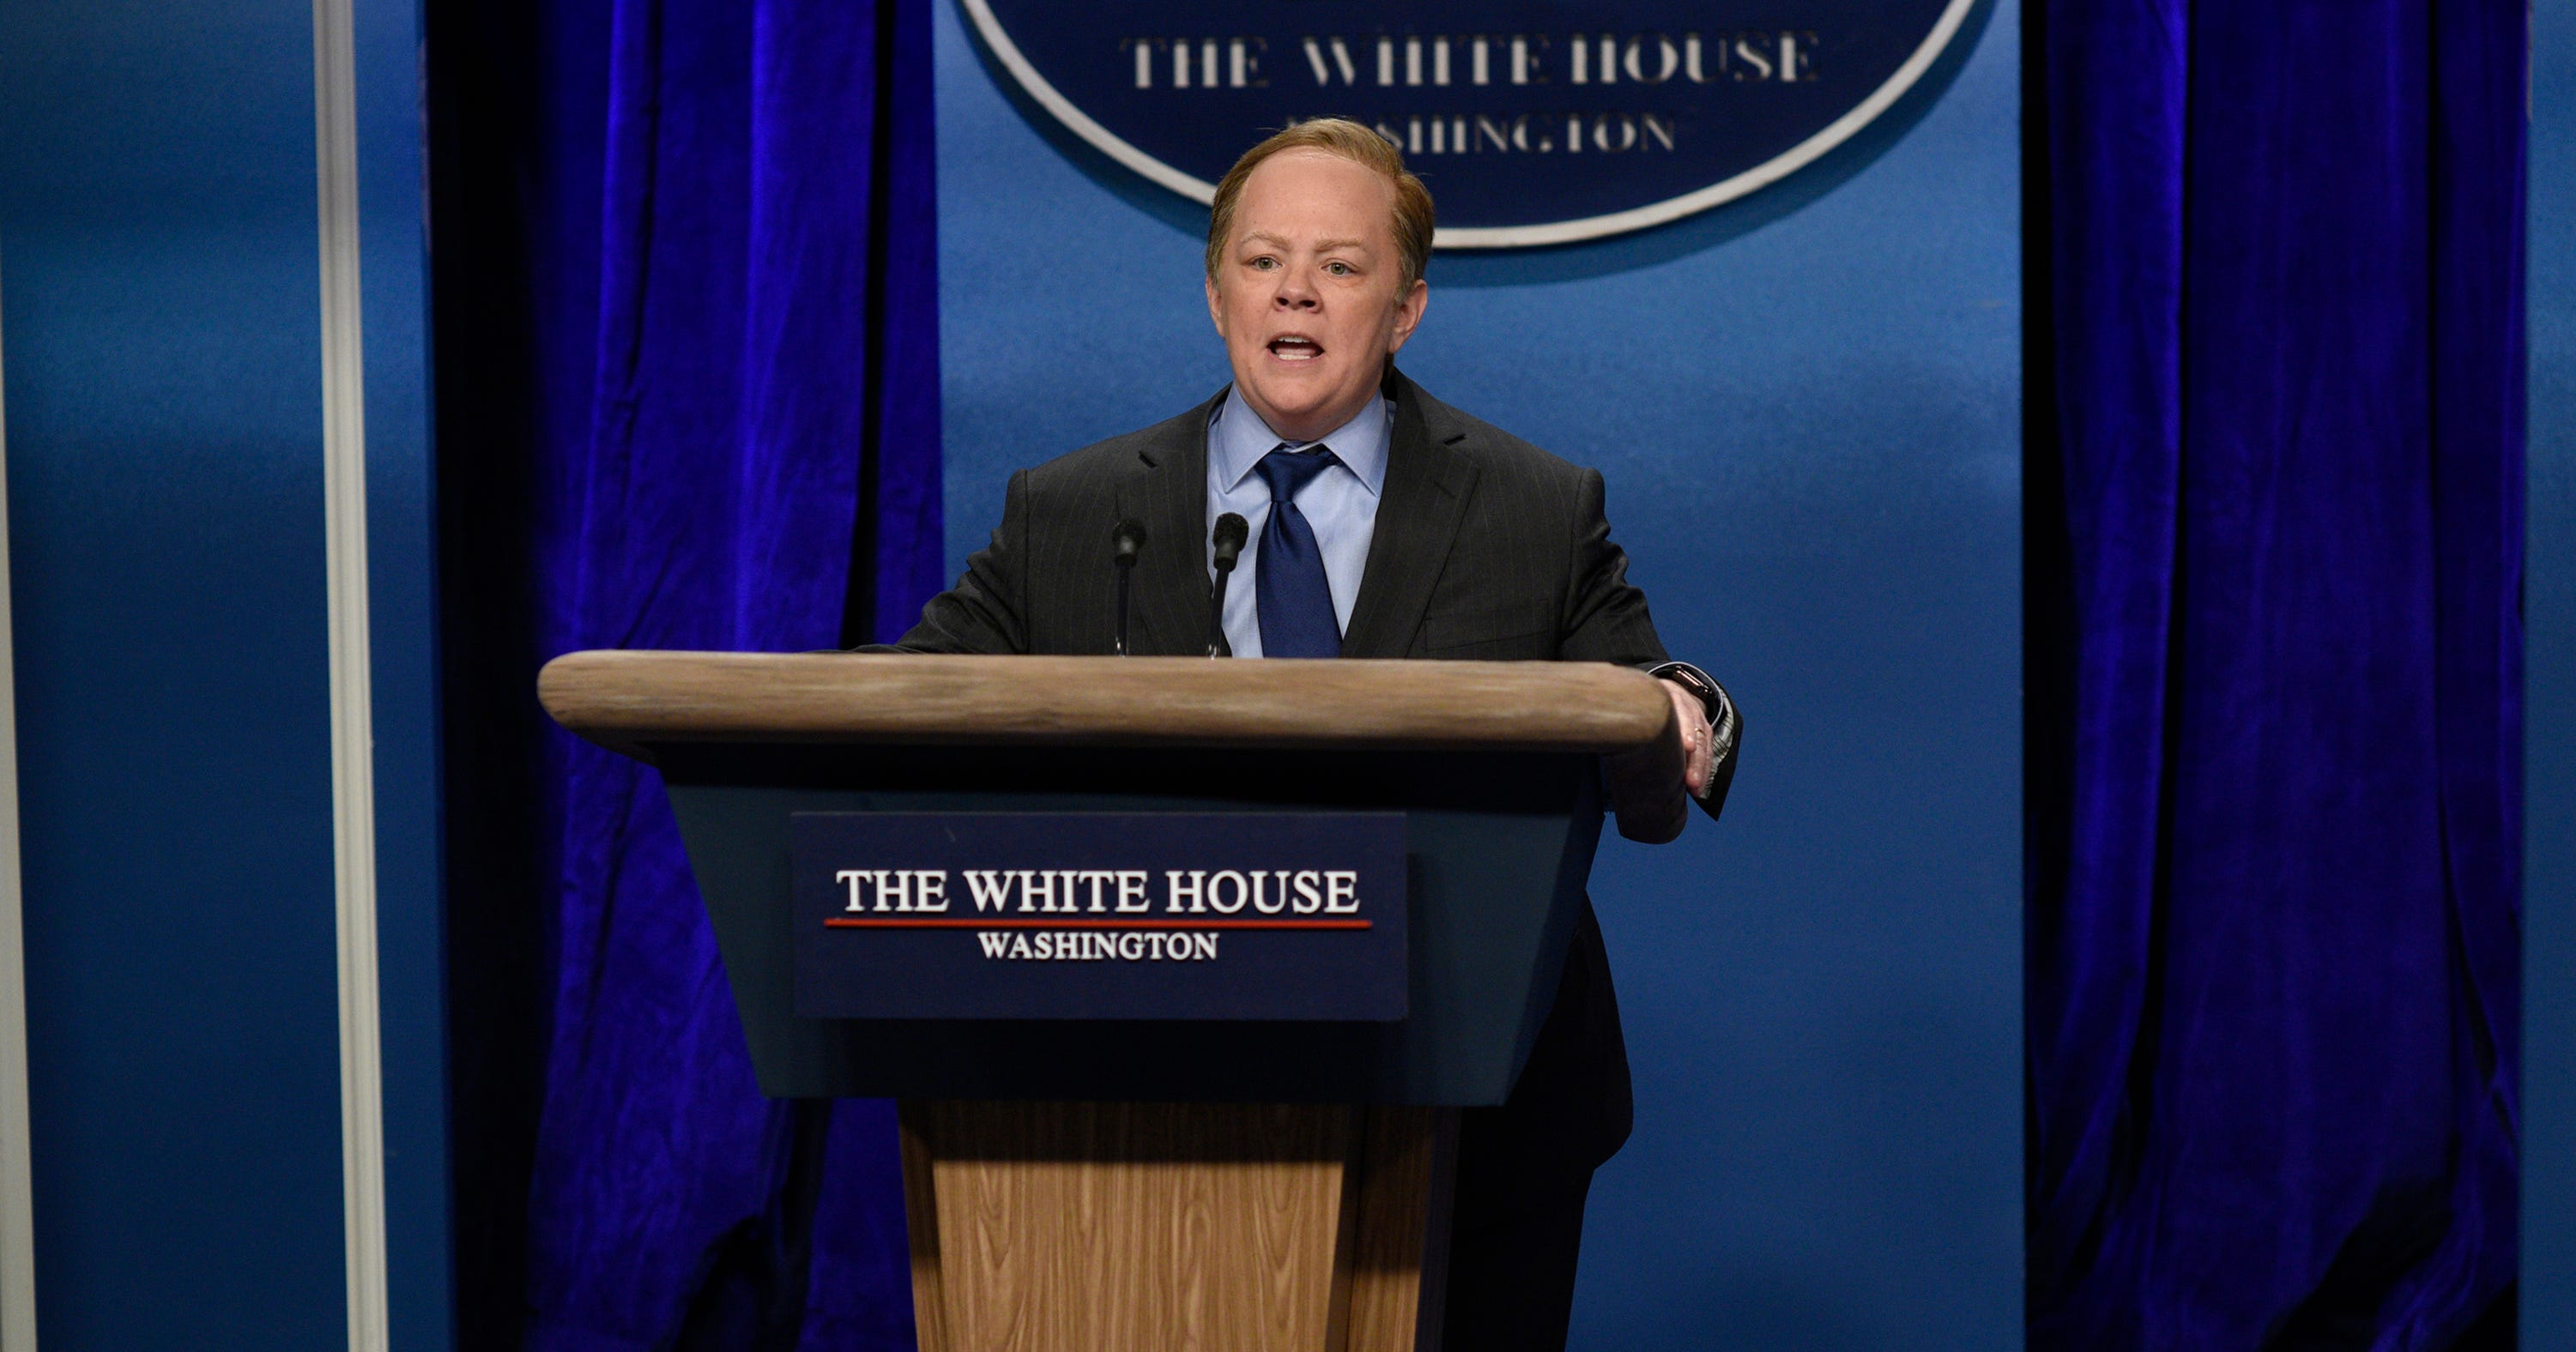 Sean Spicer Reacts To Melissa McCarthy's Saturday Night Live Takedown